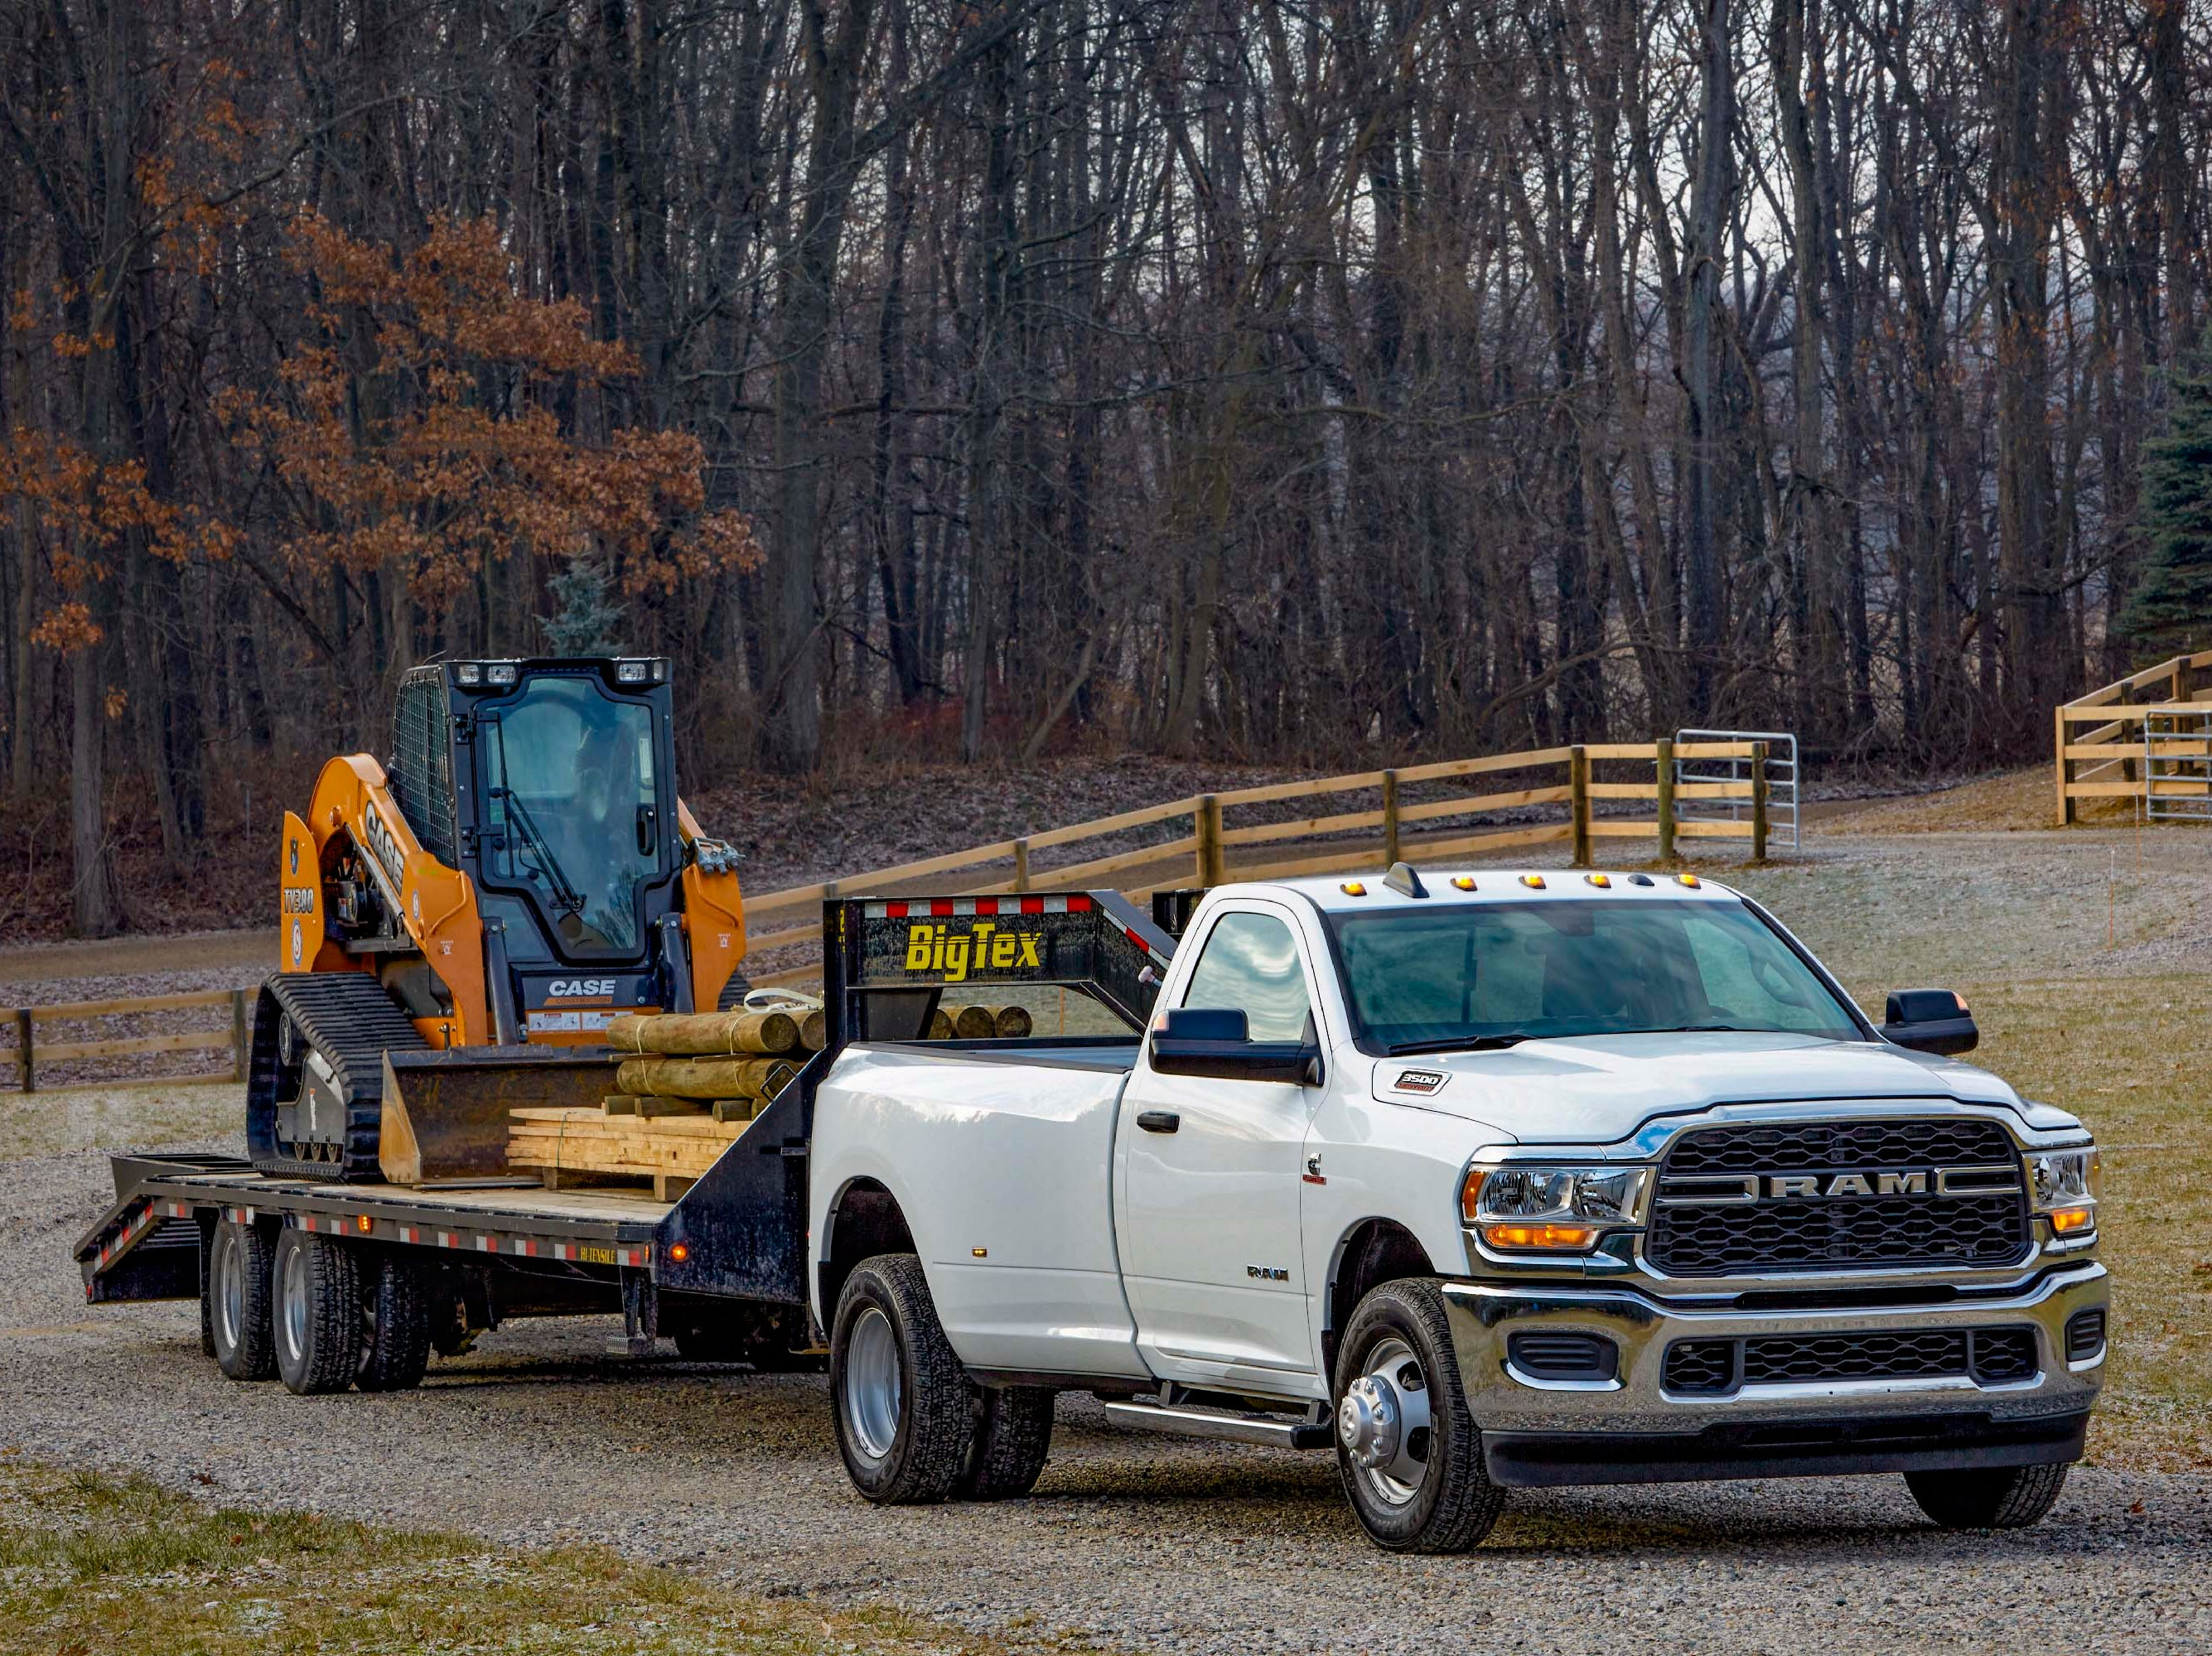 Give me a challenge. The Ram 3500 (here in base, regular cab, Tradesman trim) cleans and jerks trailers, equipment and homes weighing over 30,000 pounds. Credit a lightweighted chassis and Cummins diesel brute under the hood.